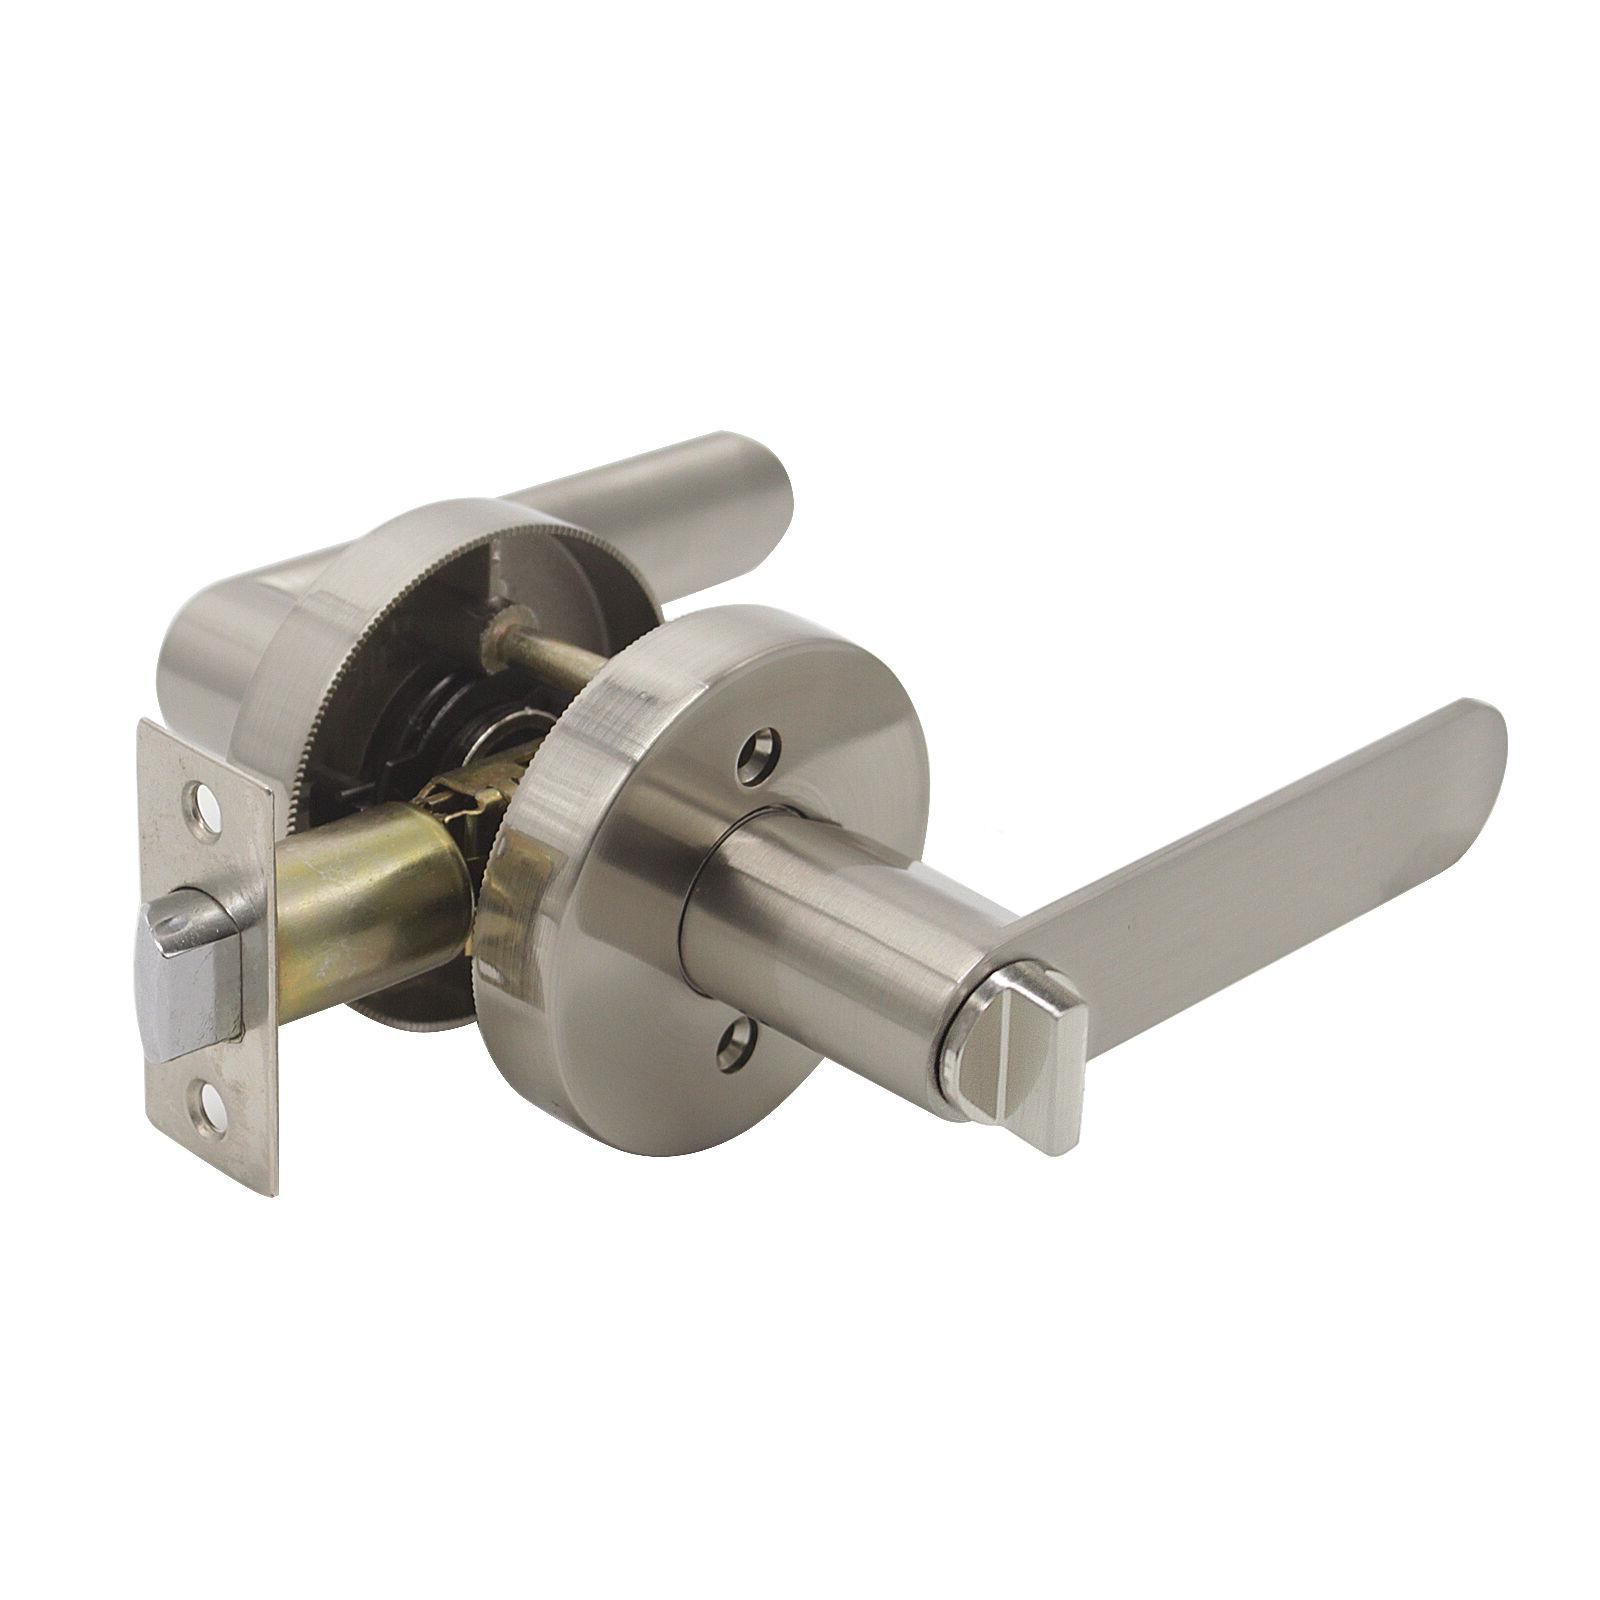 Privacy Square Knobs Lock Levers Keyless